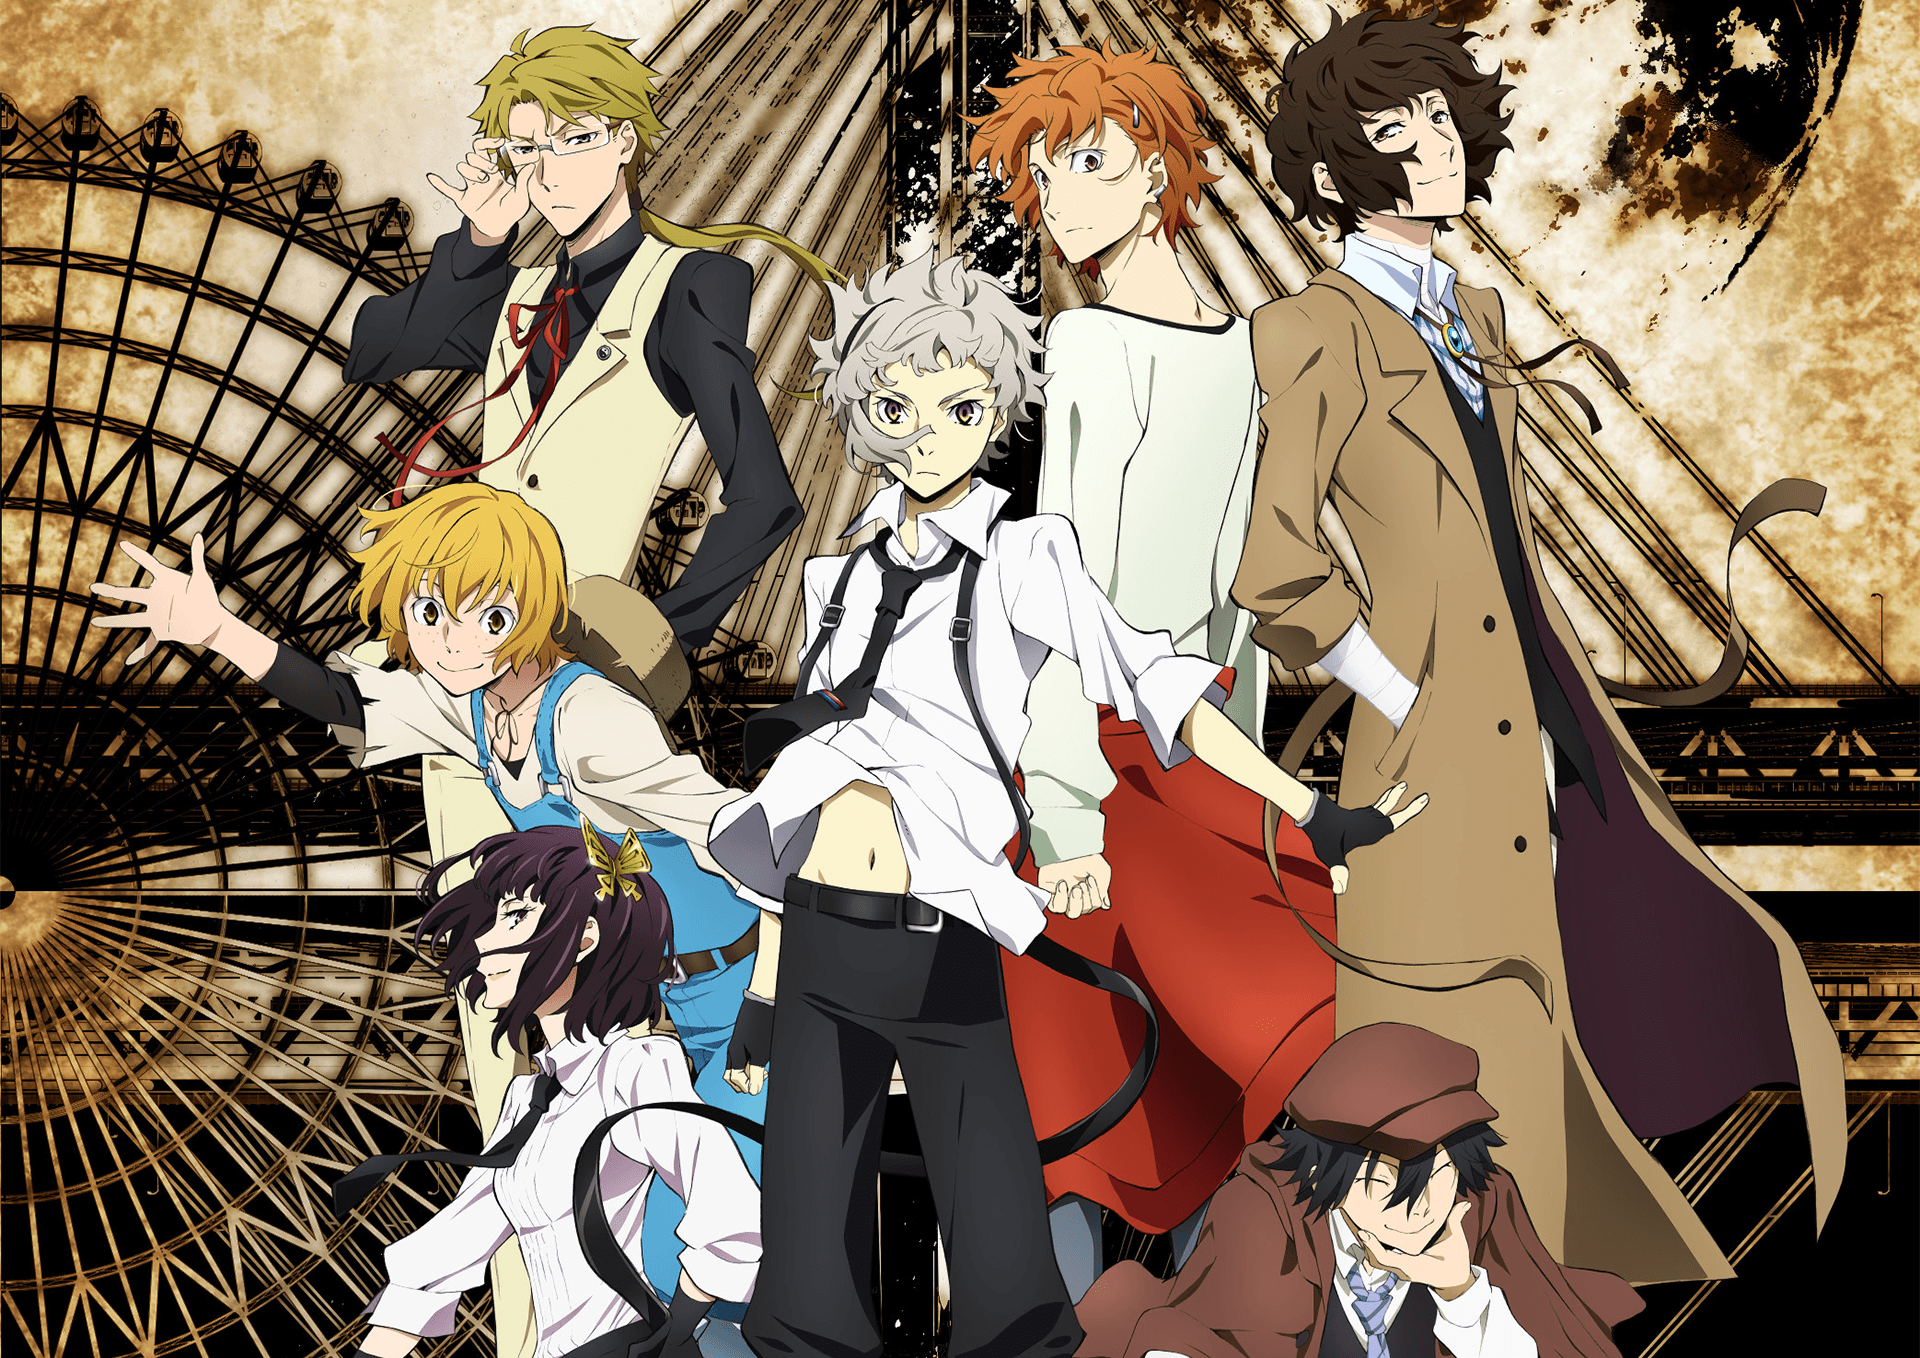 Dual Monitor Bungou Stray Dogs Bsd Wallpapers Hd Backgrounds